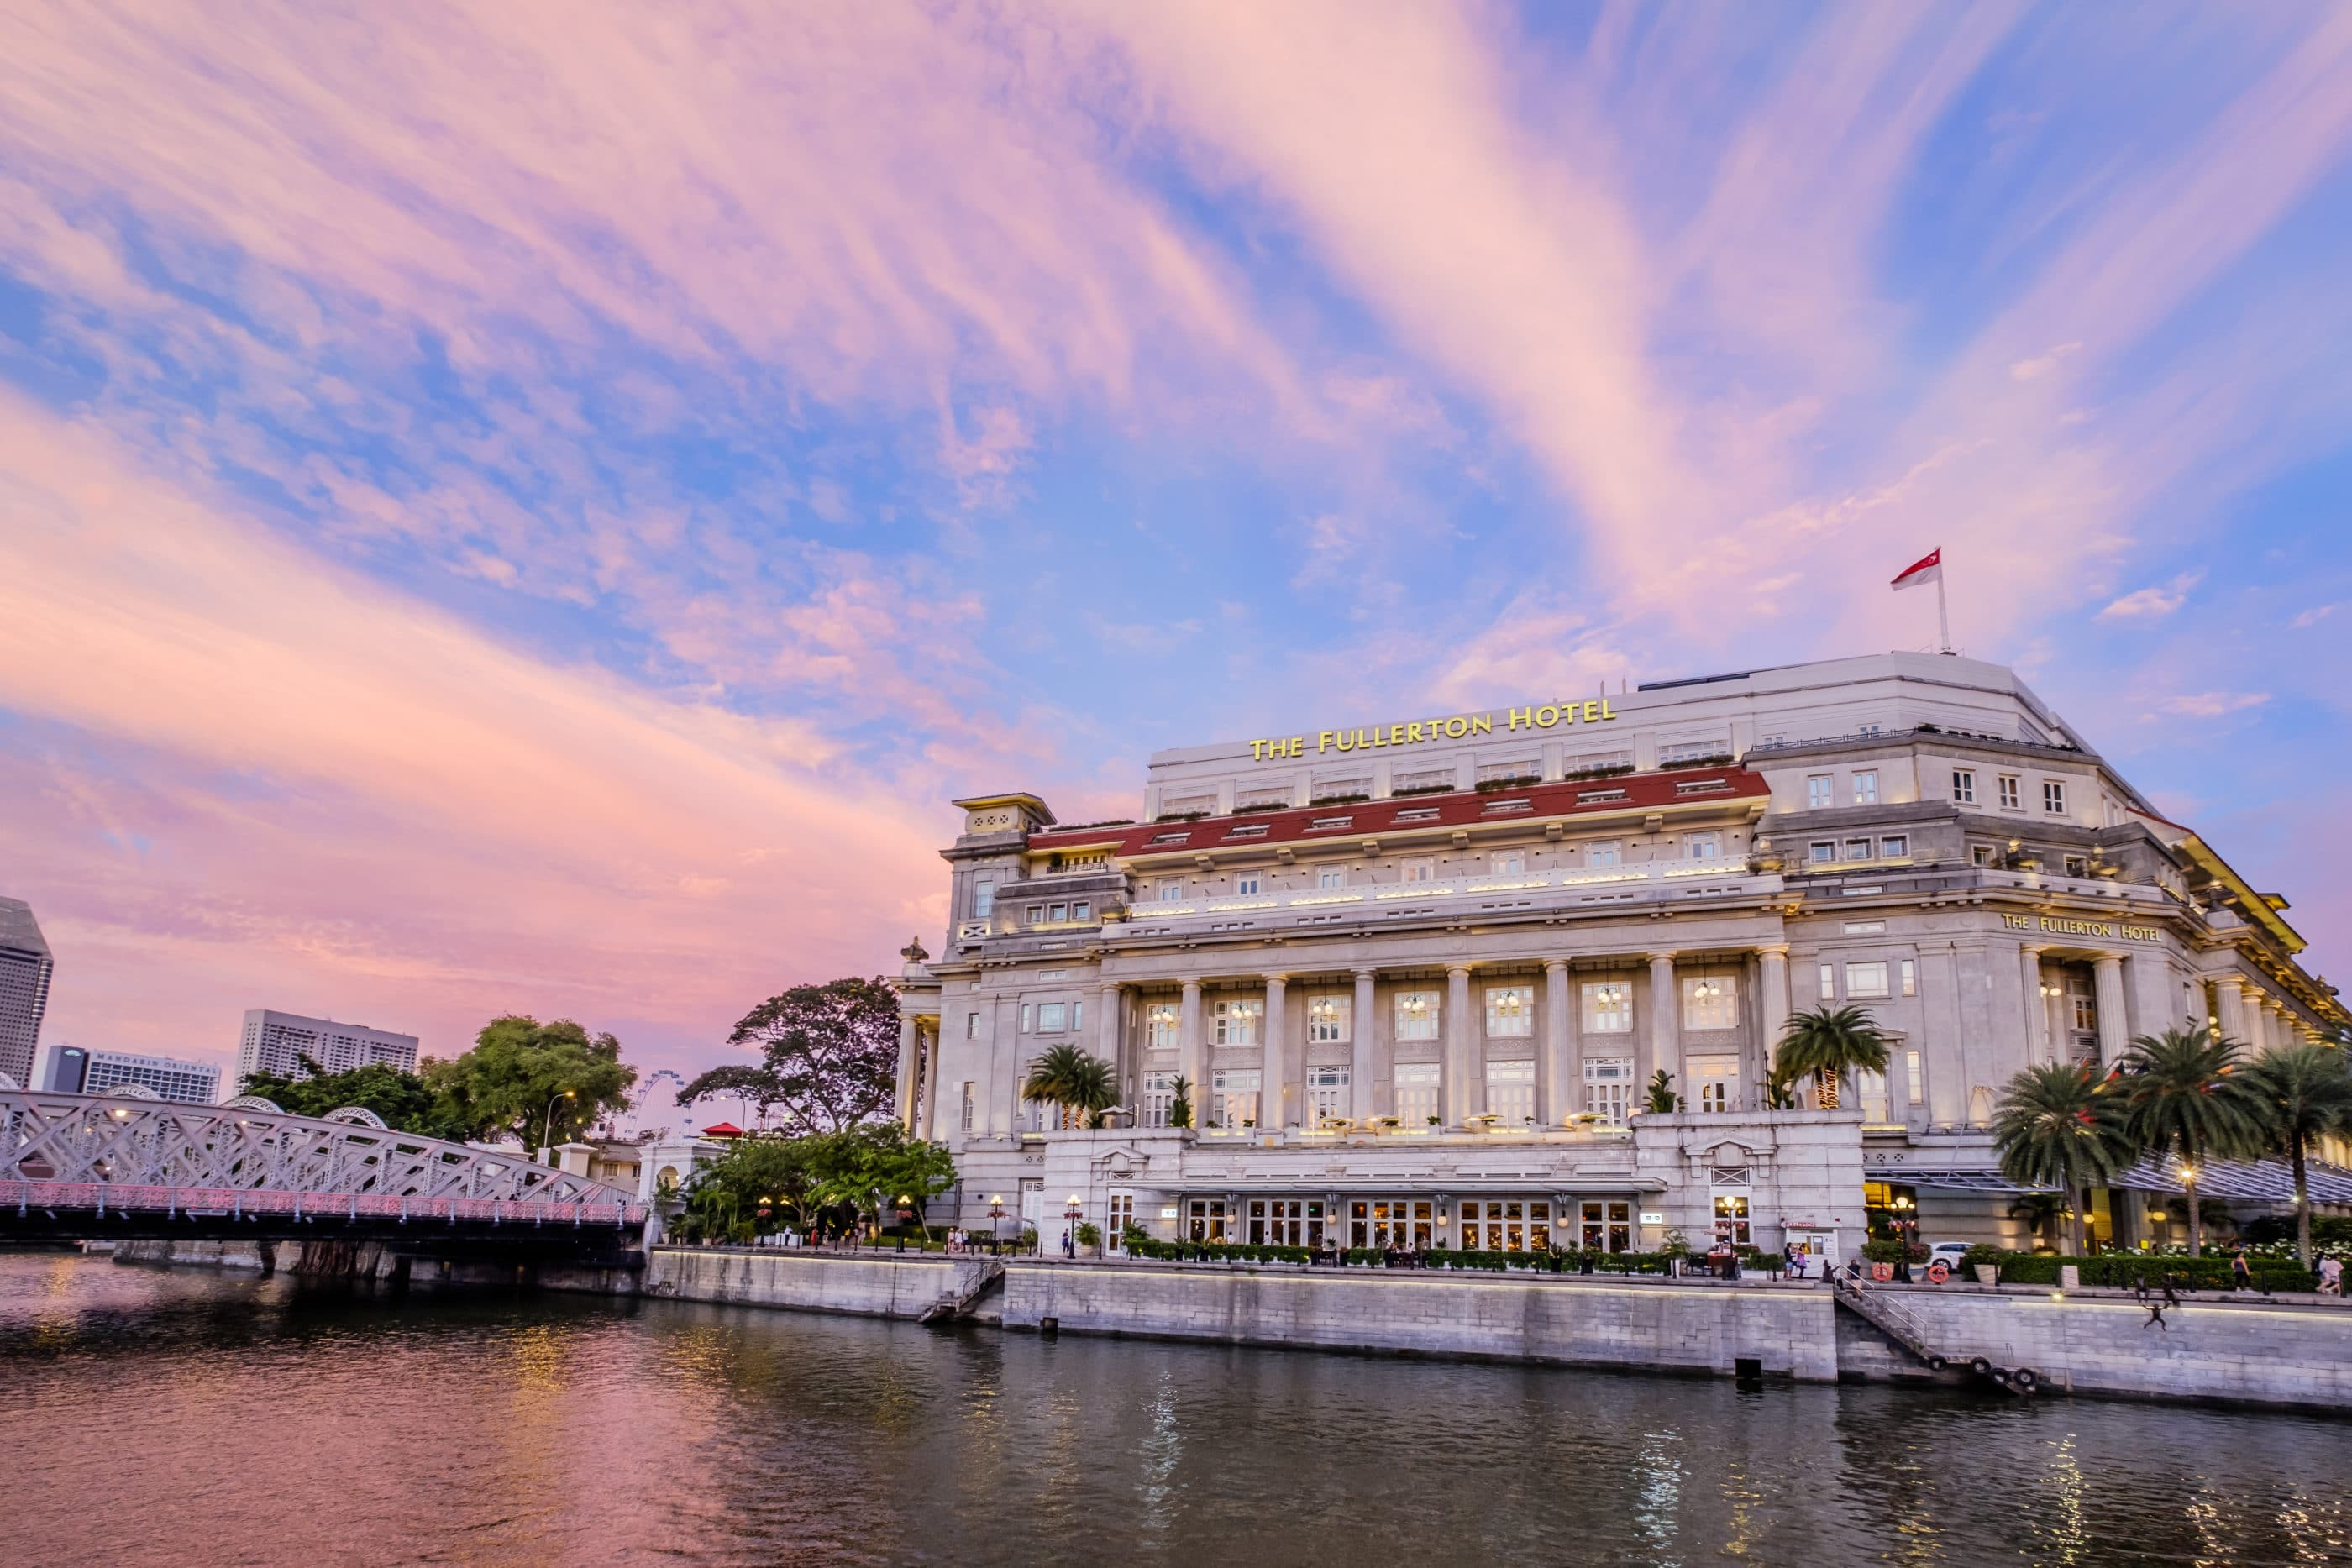 A view of The Fullerton Hotel's colonial exterior from across Marina Bay at sunset.